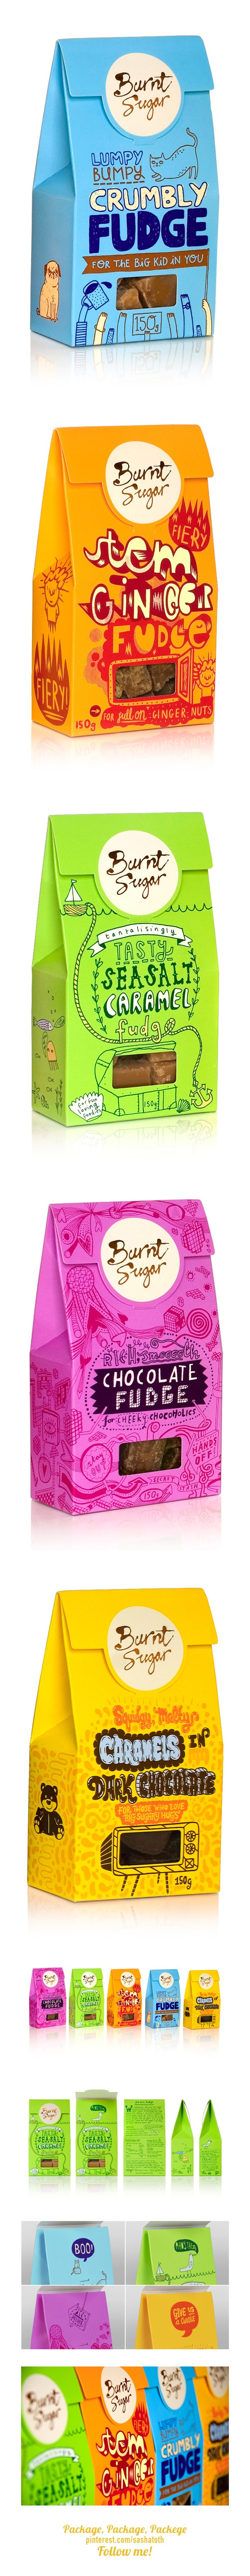 Burnt Sugar packaging *** Burnt Sugar is a boutique brand of fudge with humble beginnings. Started by Justine Cather, who nabbed her mum's recipe and took it to market (London's famous Borough Market to be precise), word soon got out about the delicious lumpy, bumpy pieces of sweetness and its popularity soared. by d.studio, via Behance